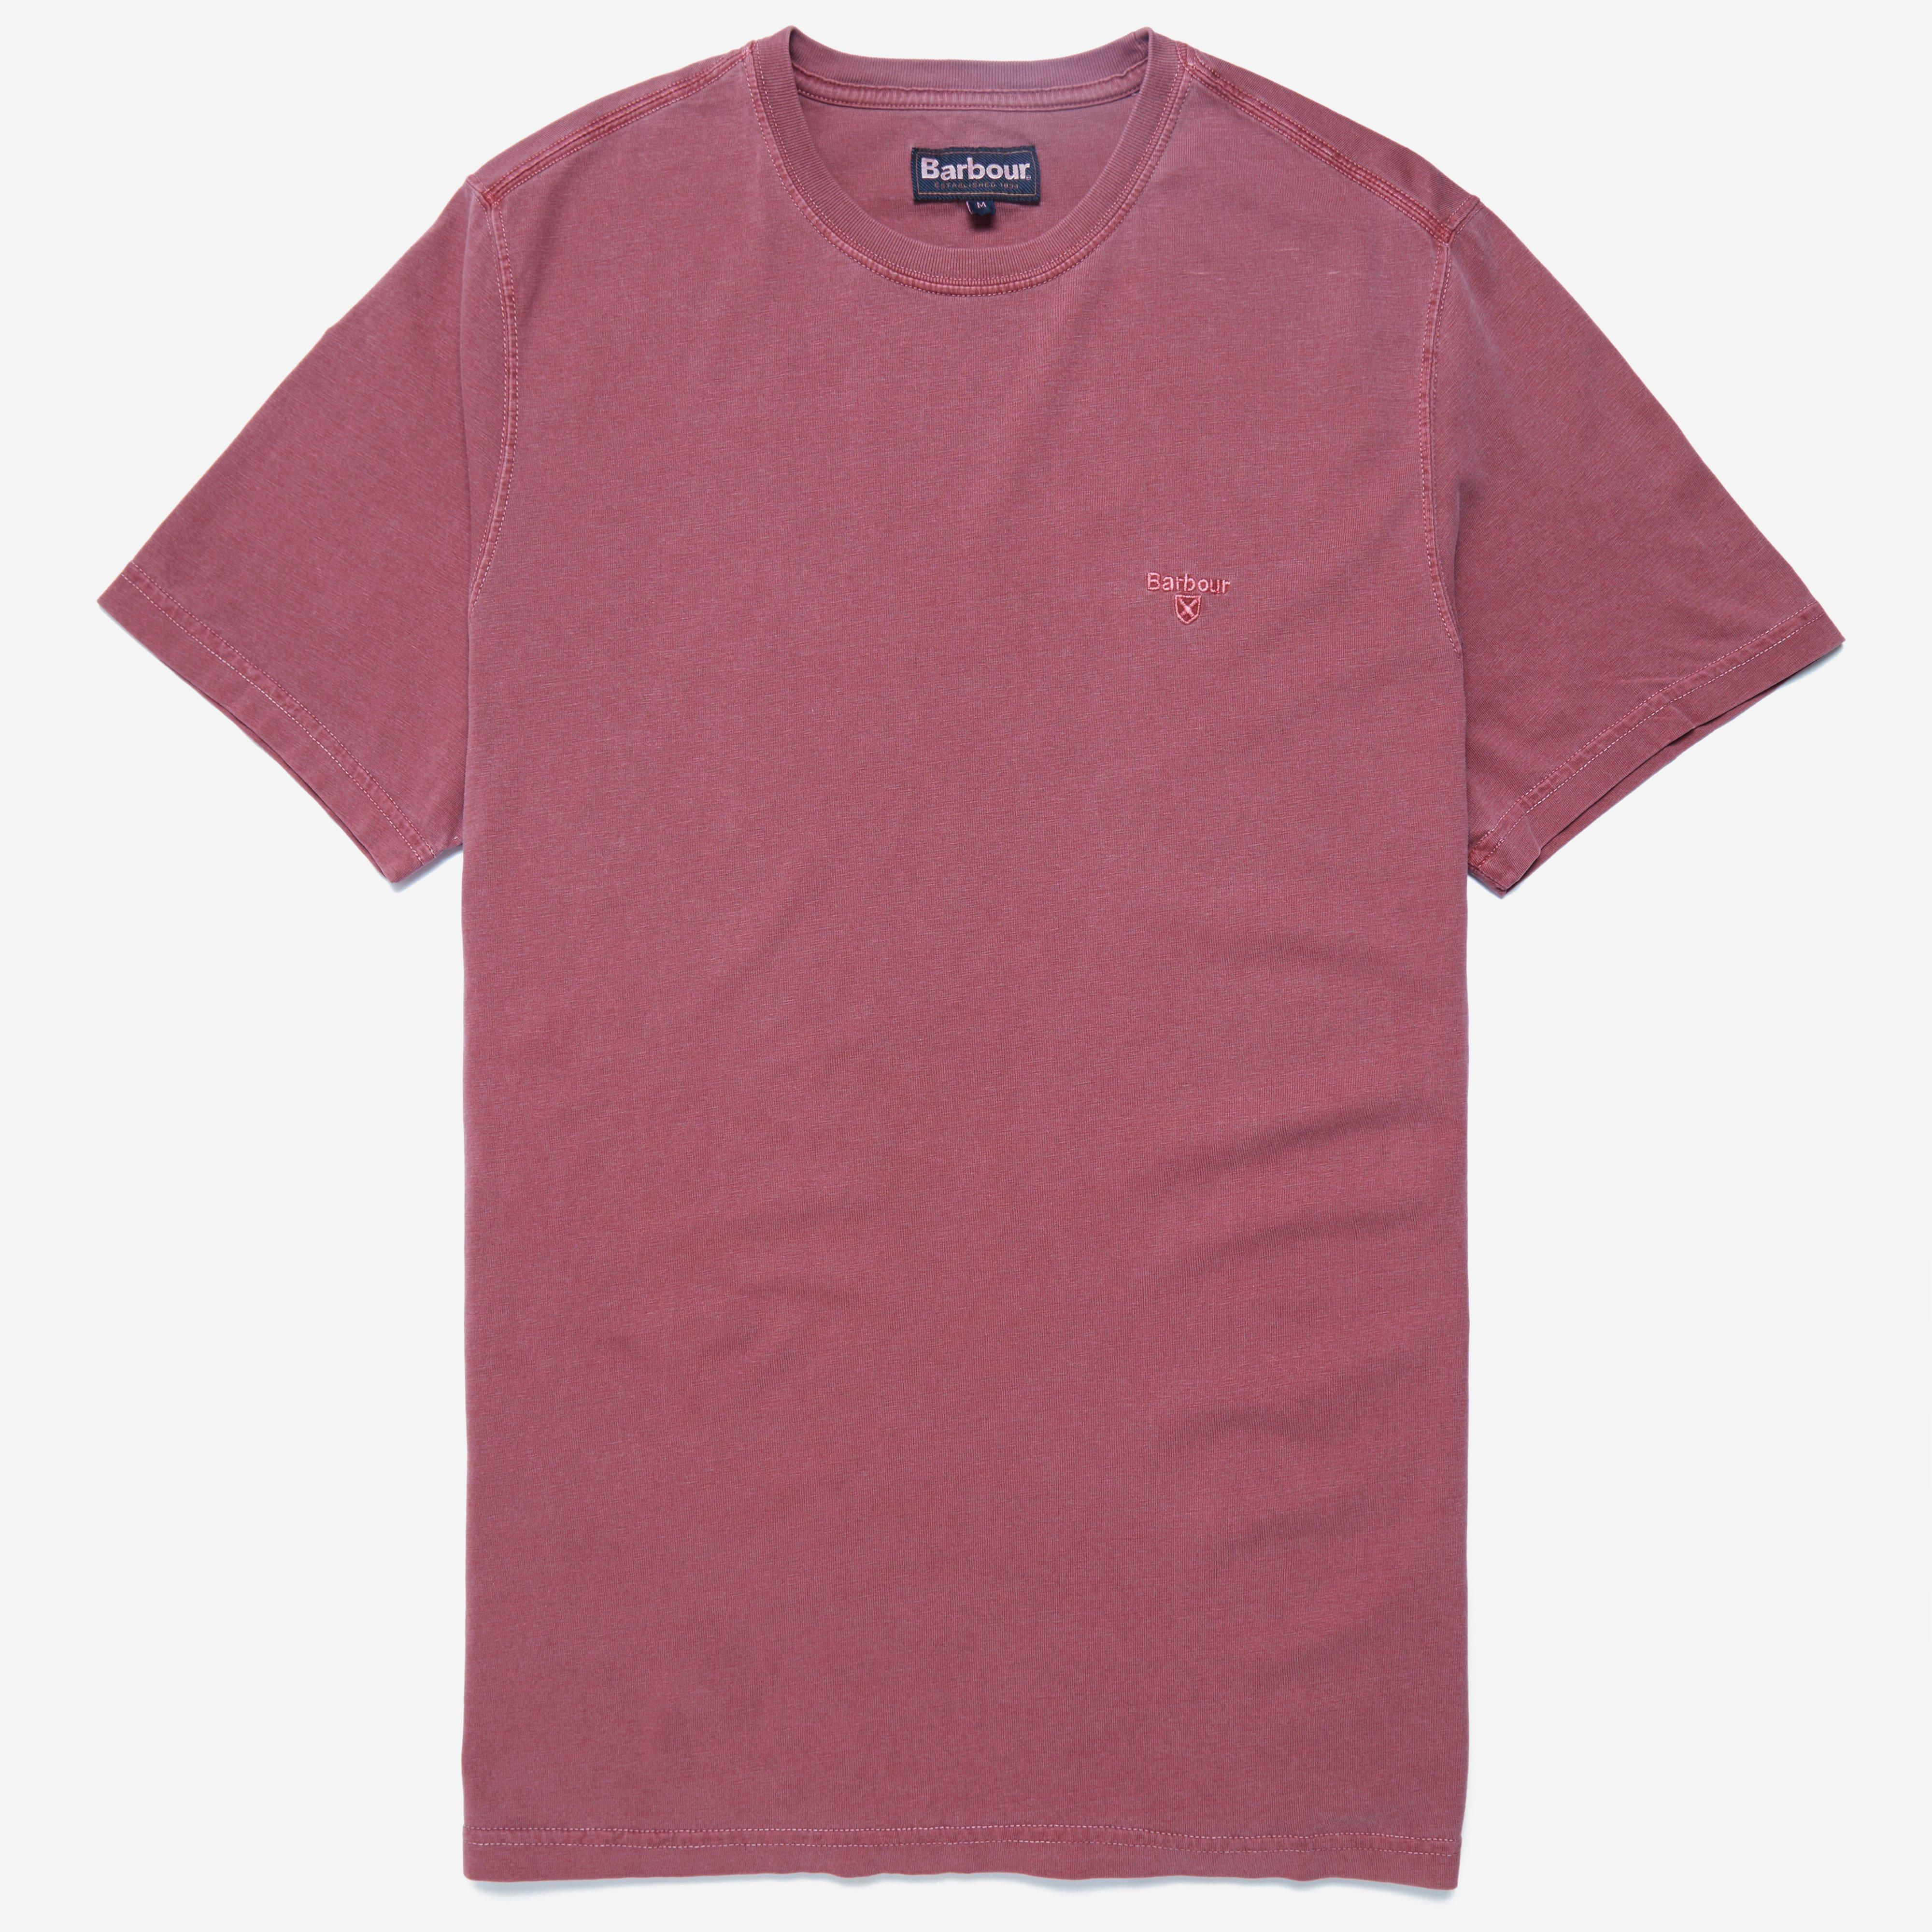 Babour Garment Dyed Tee